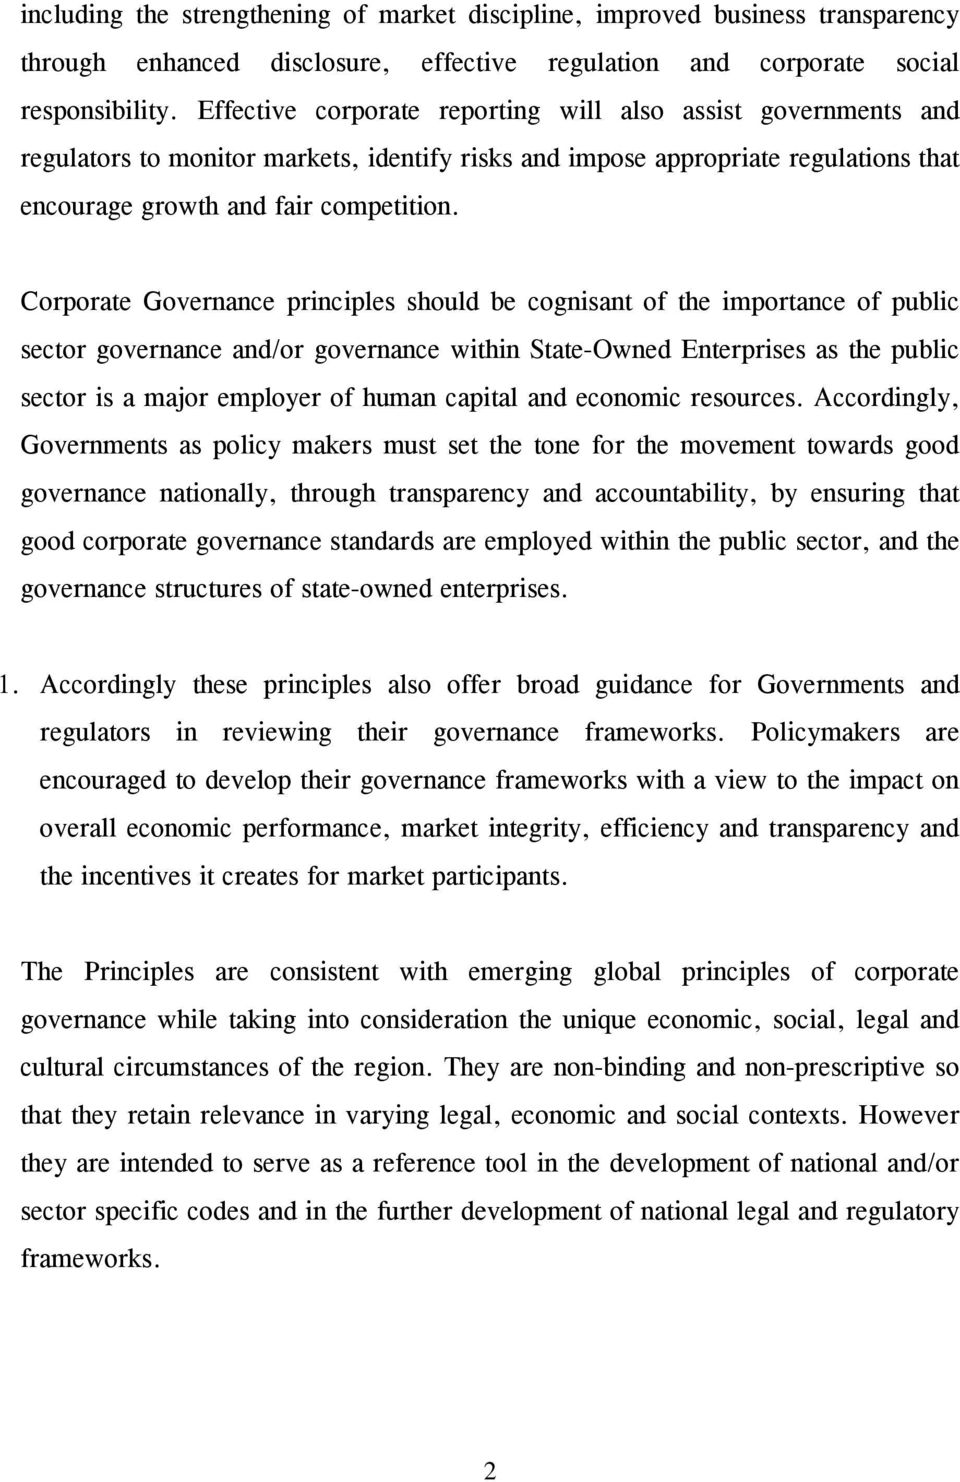 Corporate Governance principles should be cognisant of the importance of public sector governance and/or governance within State-Owned Enterprises as the public sector is a major employer of human